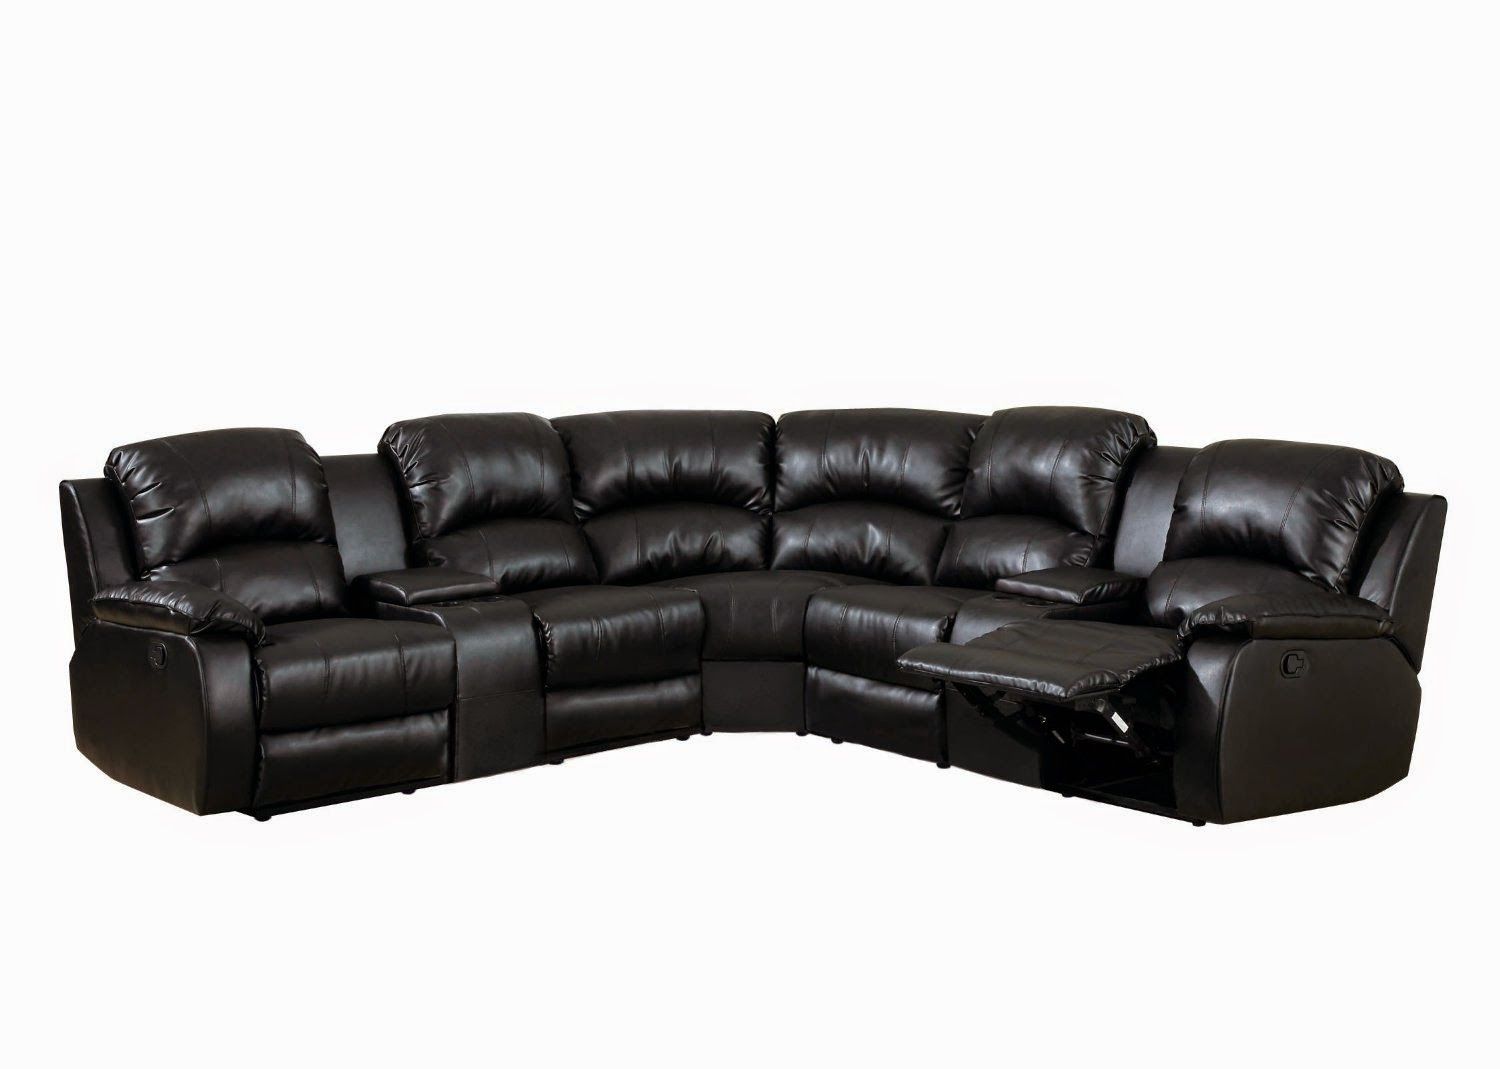 cheap reclining sofa and loveseat reveiws best recliner sofa brand rh recliningsofaandloveseat blogspot com World's Best Recliner Best Home Furnishings Reclining Love Seat